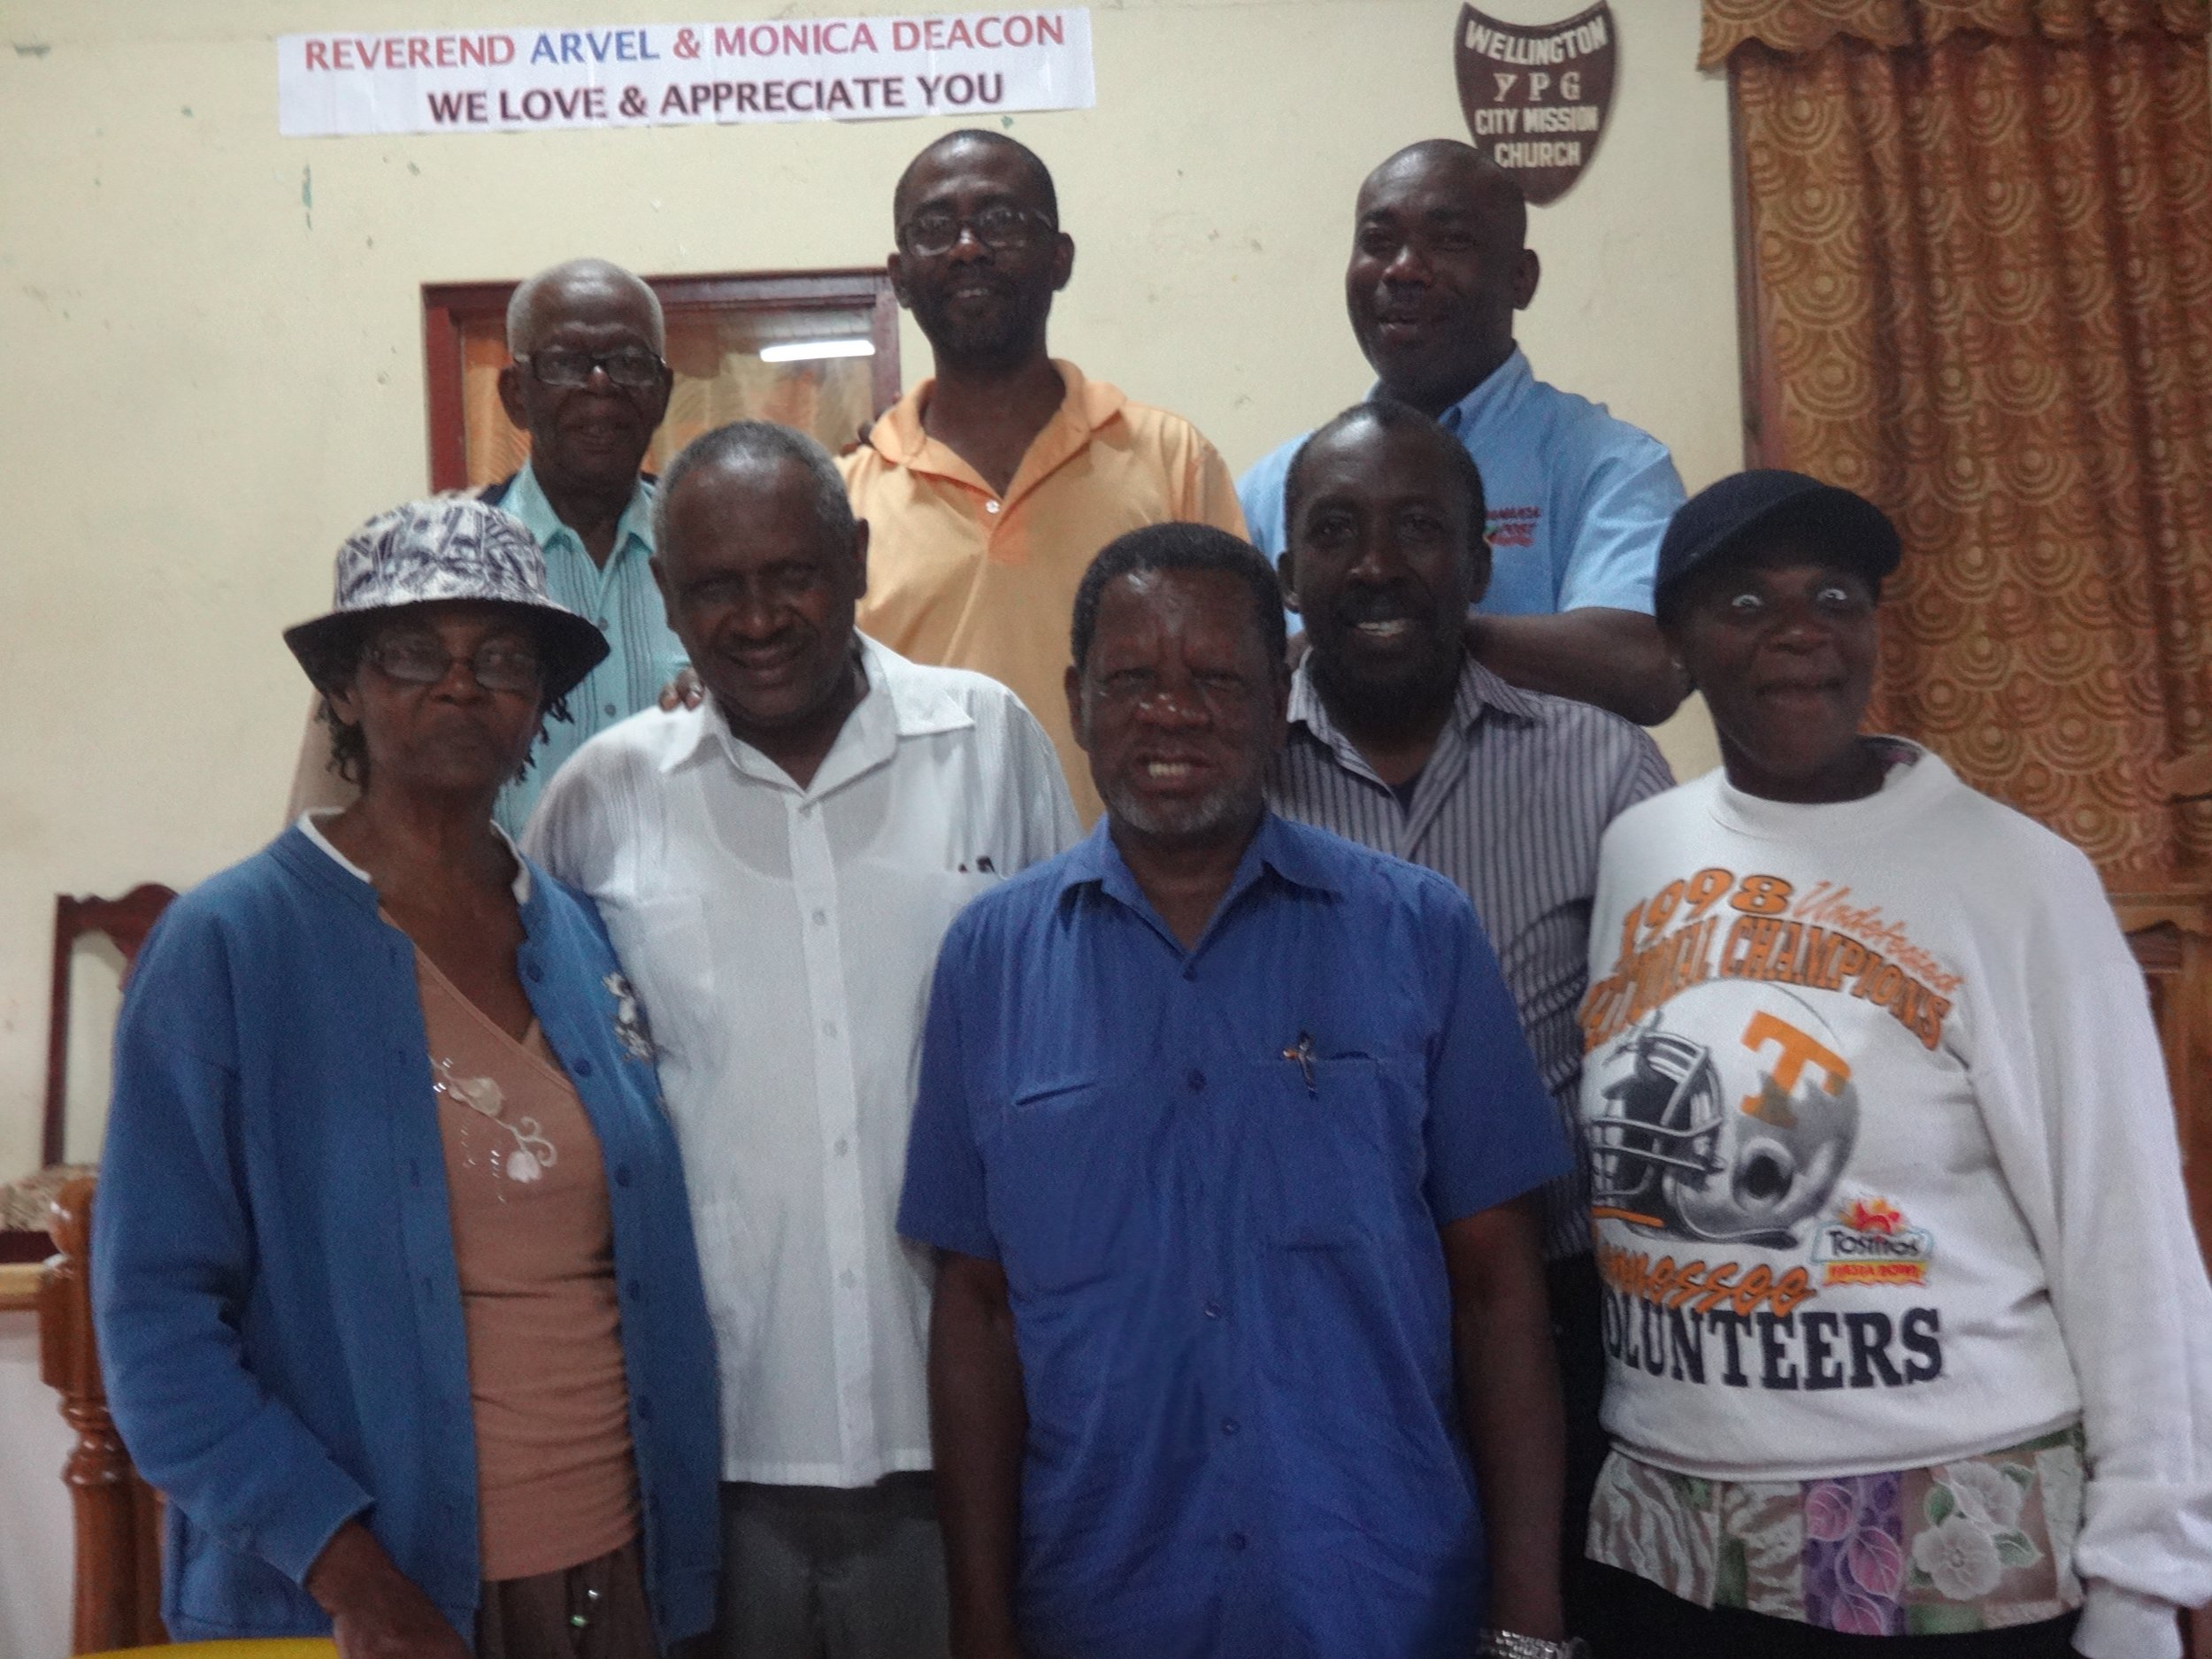 With community leaders - Rose Hill, Jamaica